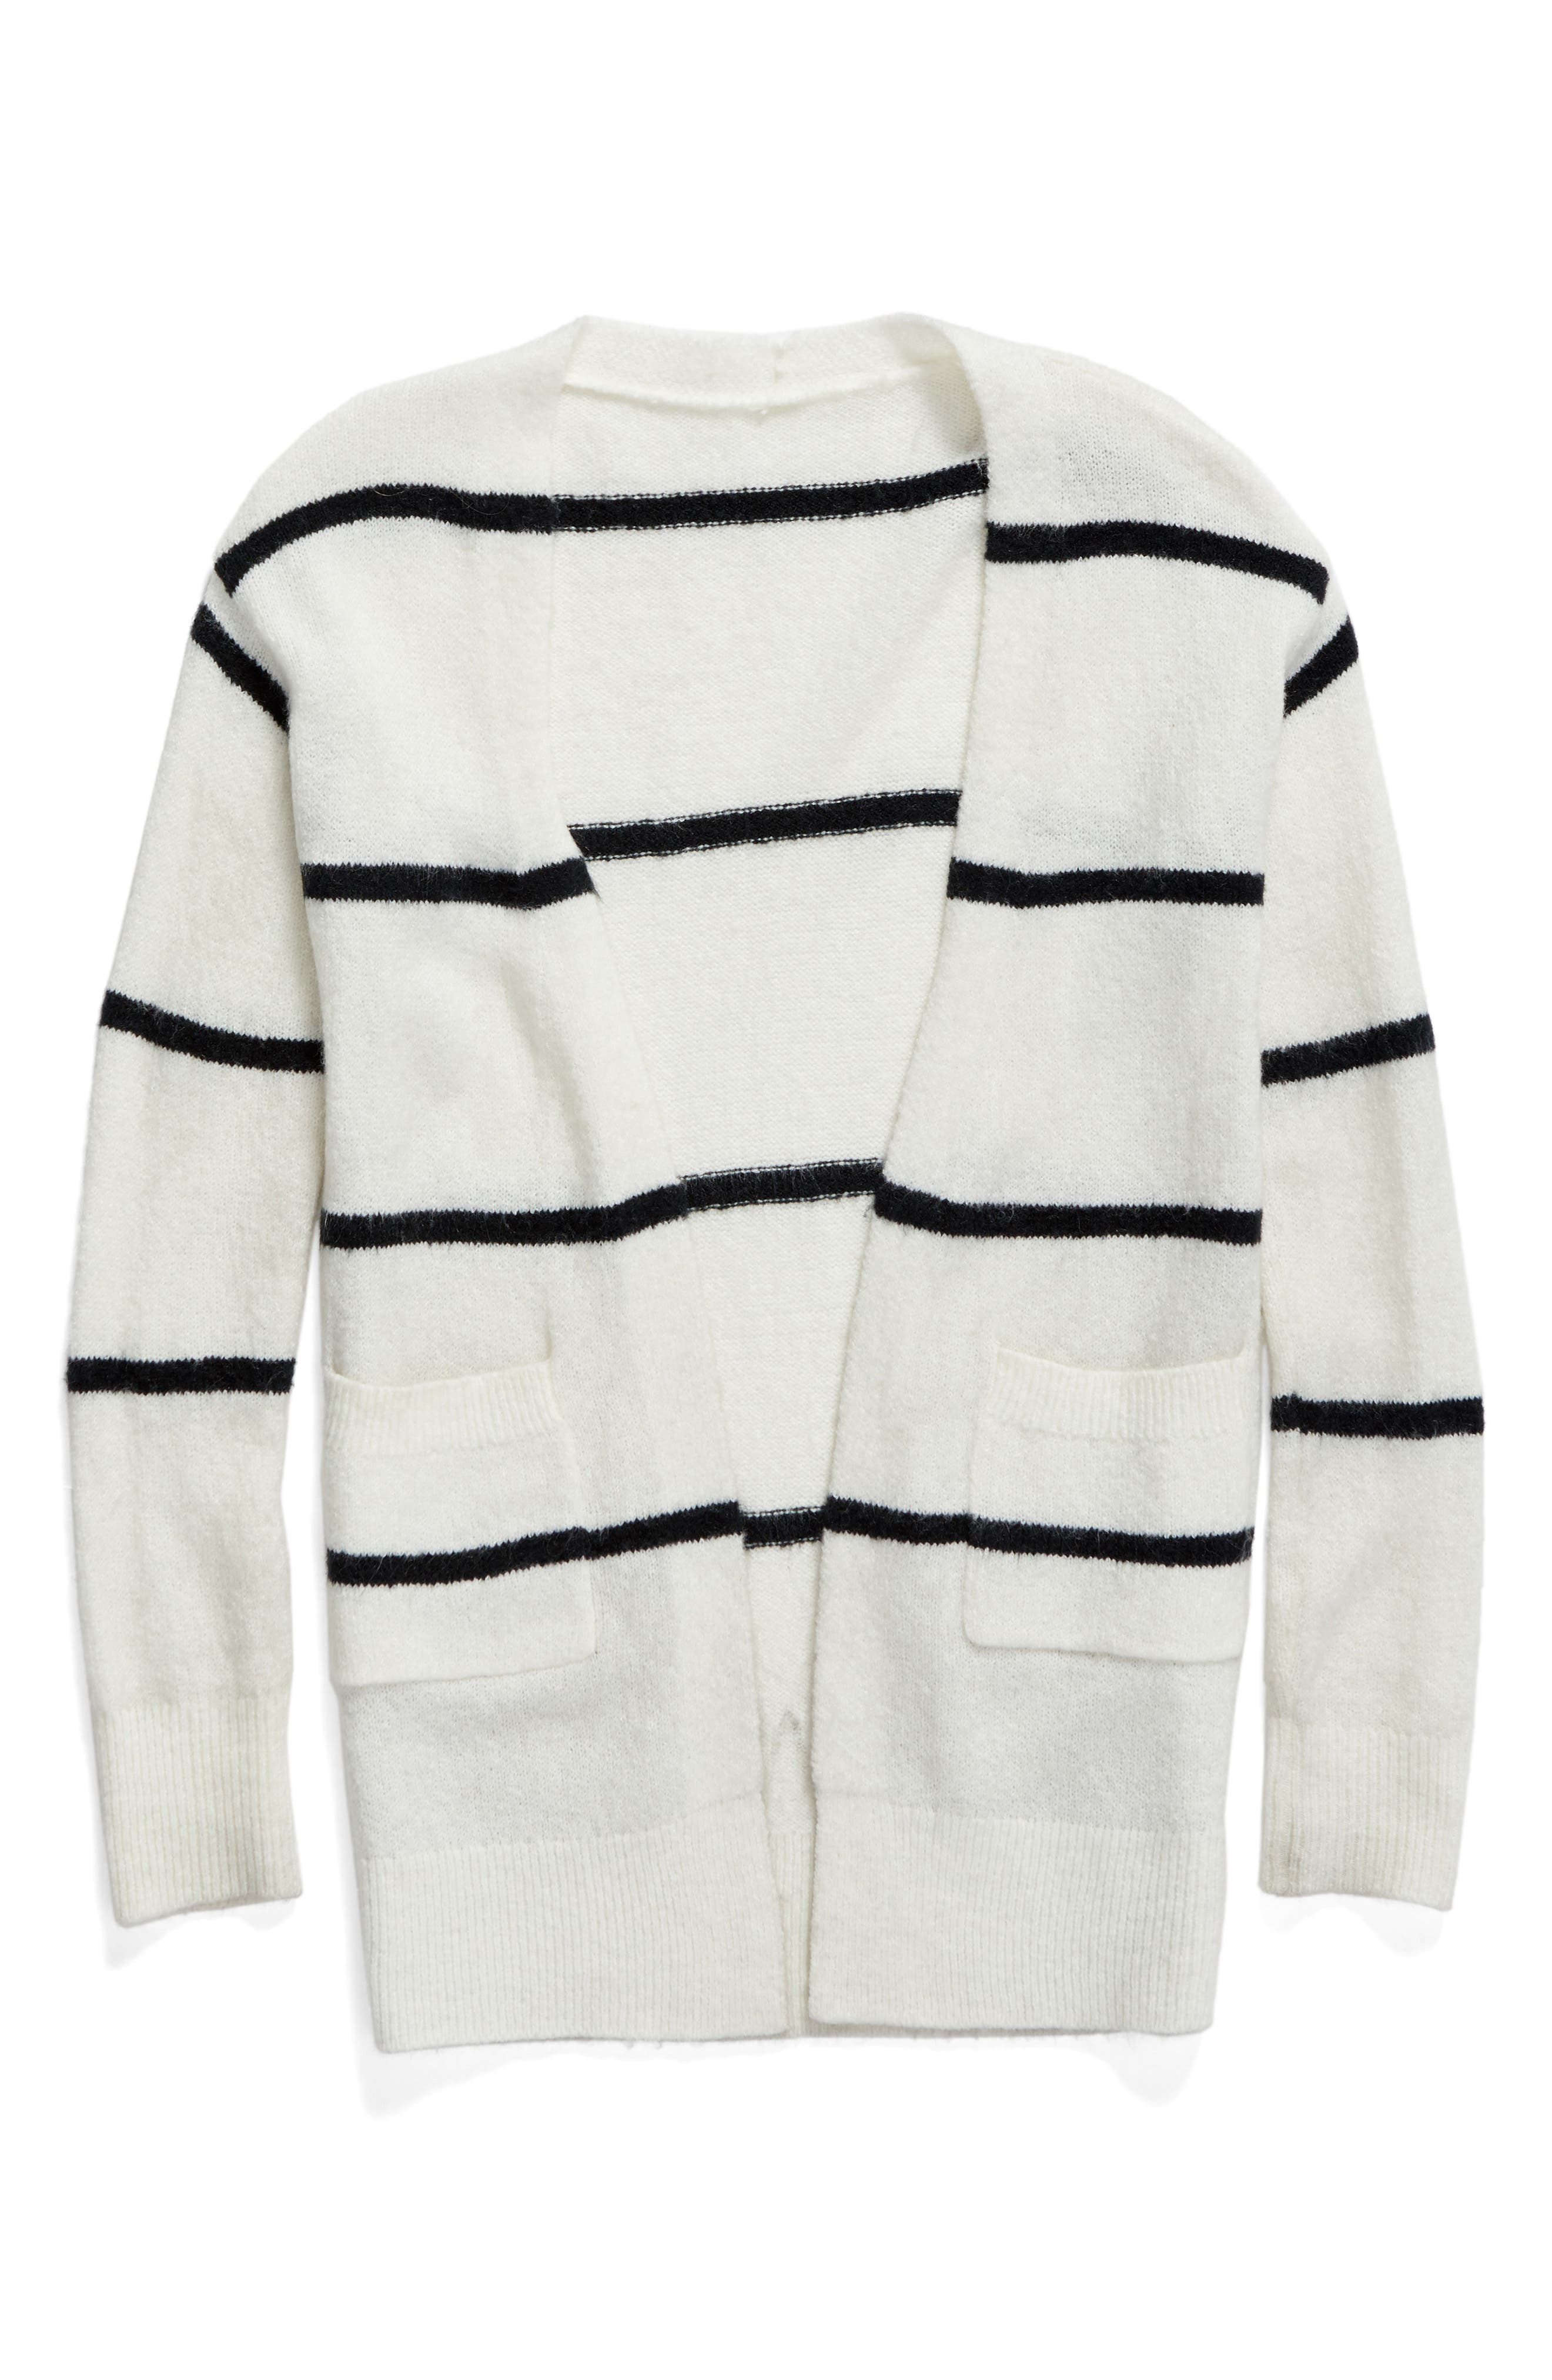 Tucker + Tate Open Stripe Cardigan (Big Girls)